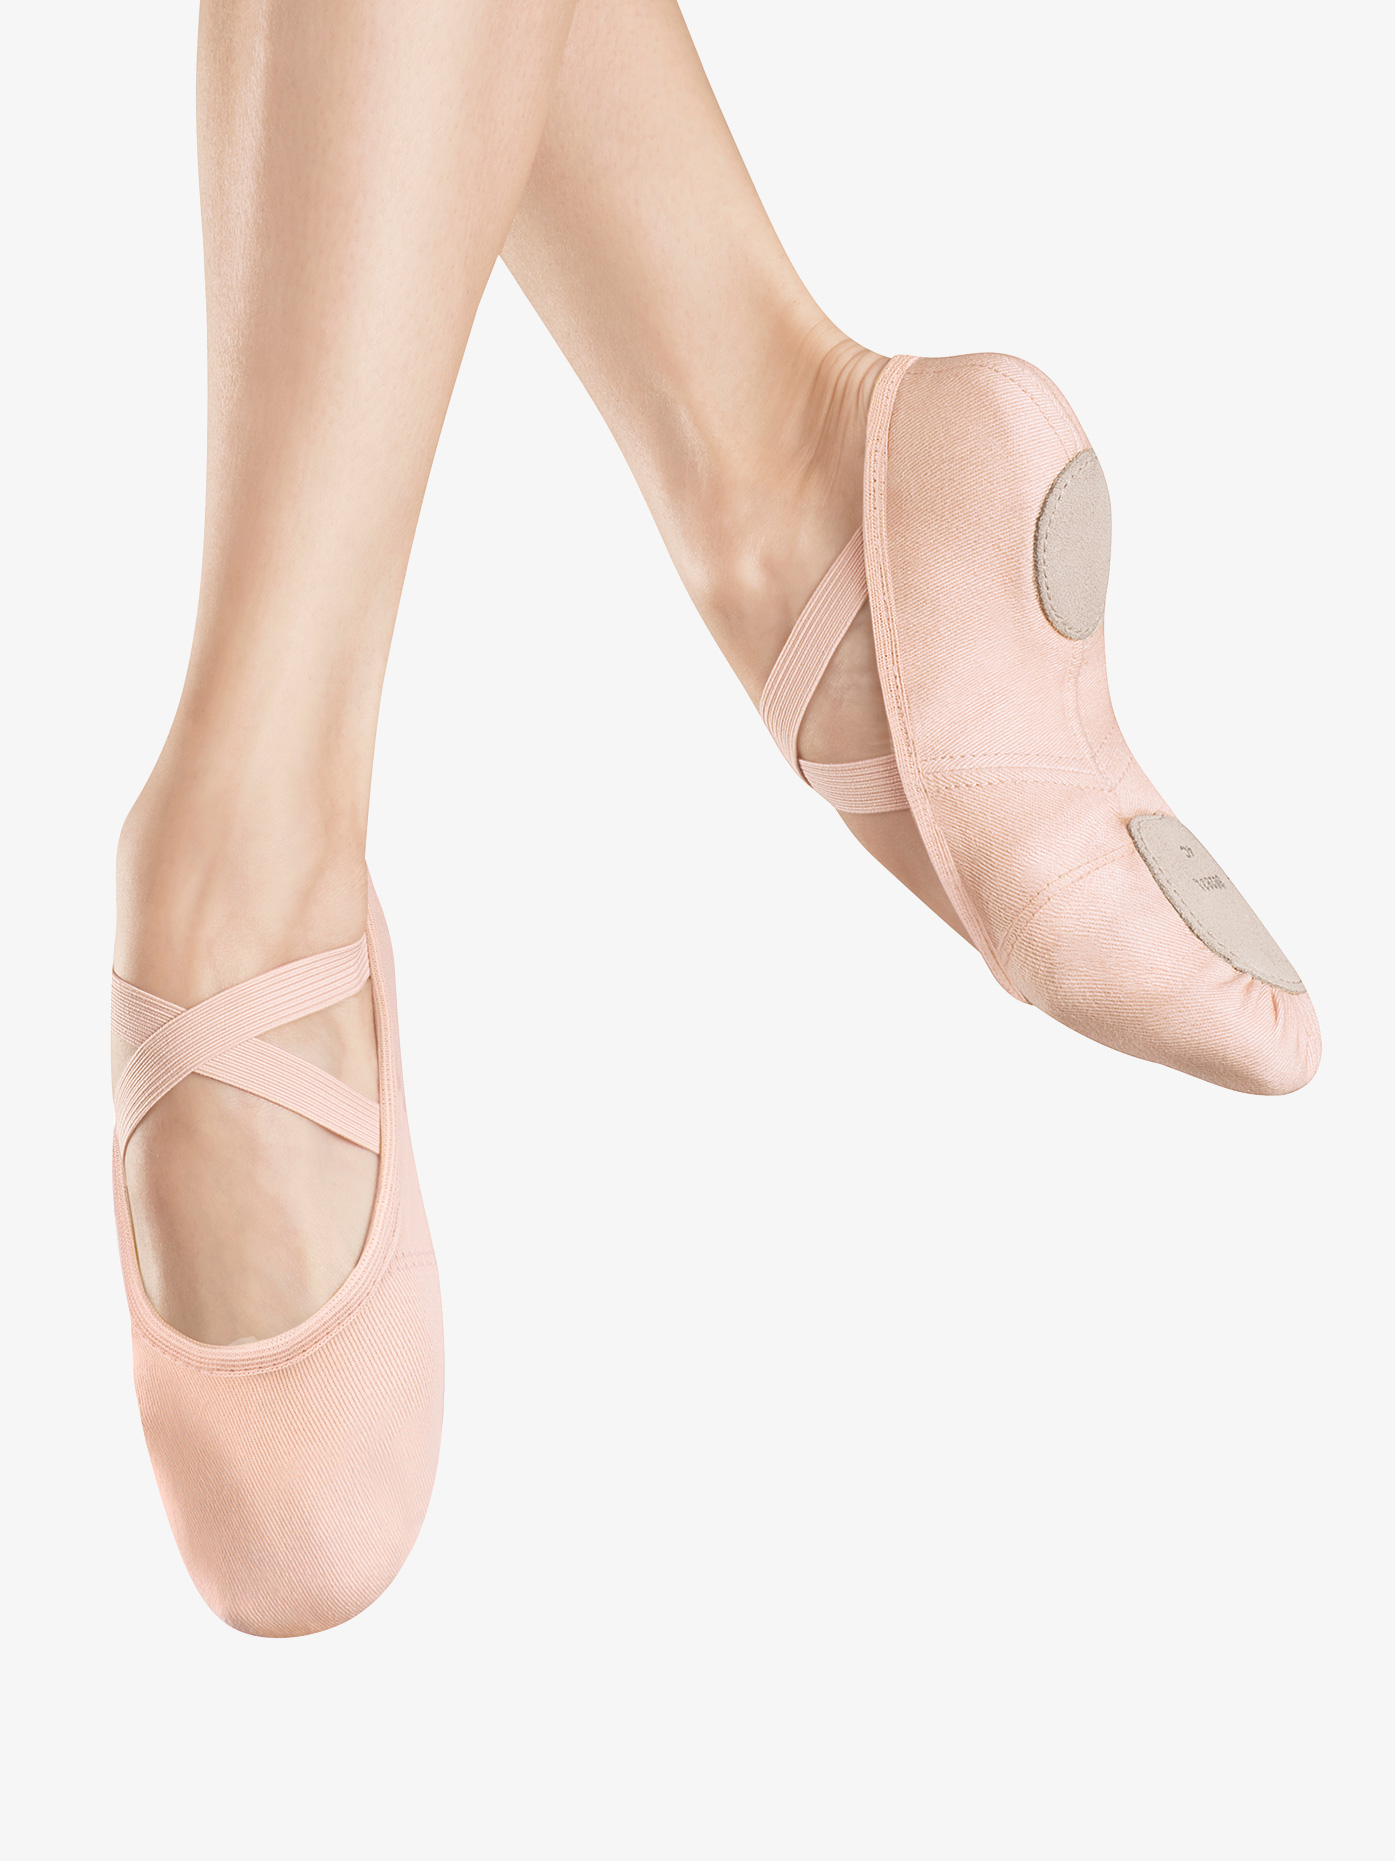 Bloch Womens Infinity Stretch Stretch Canvas Ballet Shoes S0220L